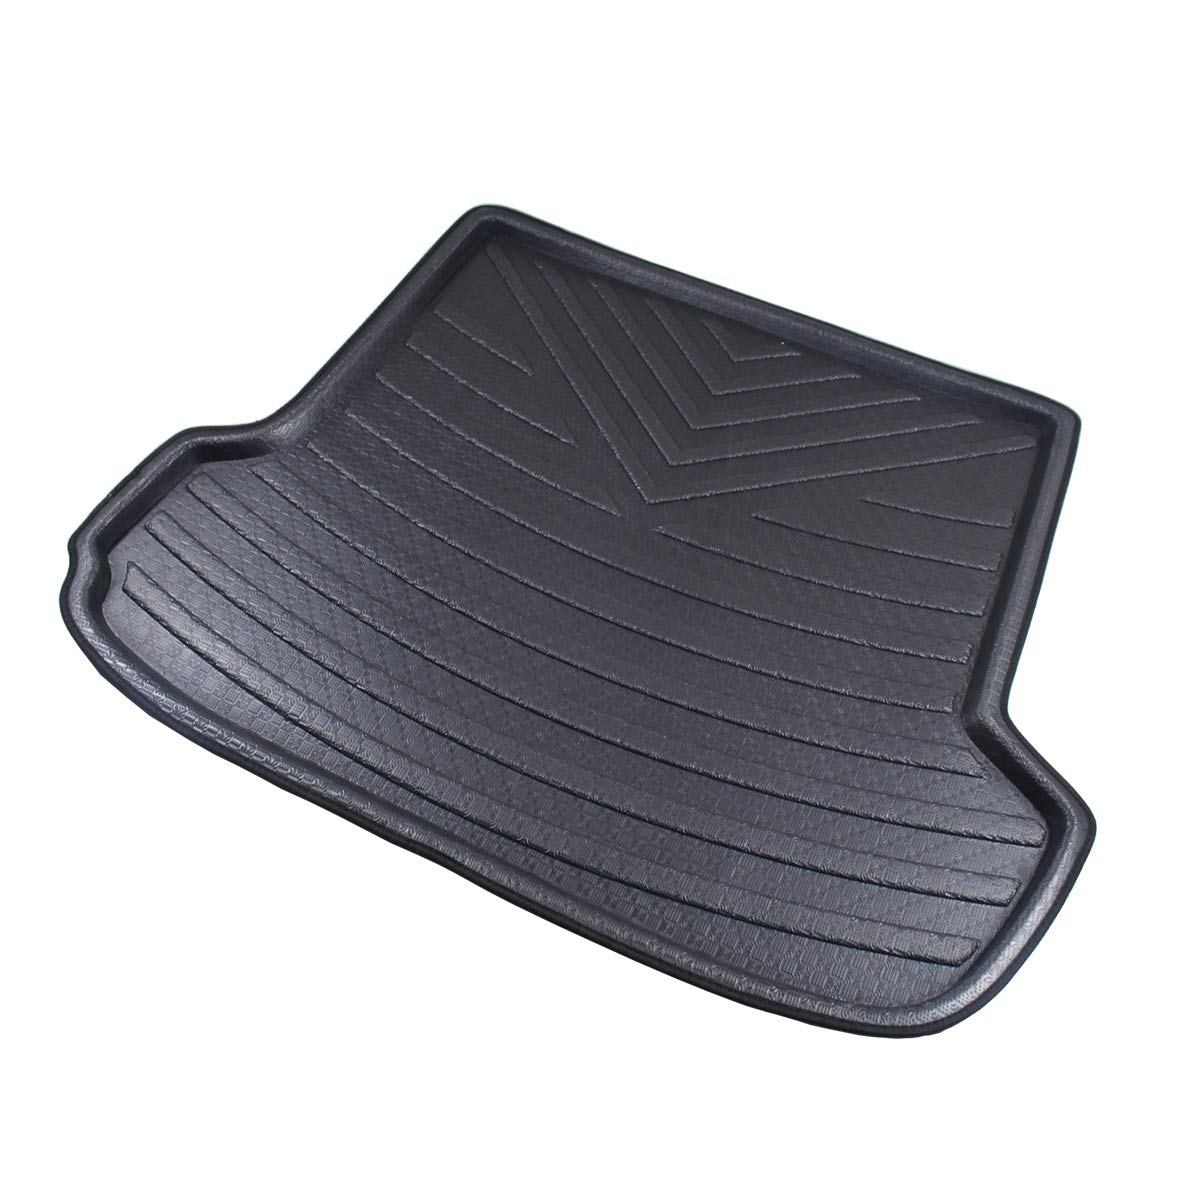 ZYHW Auto Cargo Liner Boot Rear Trunk Mat Tray Floor Mat Cover Protector for 2015-2018 Subaru Outback